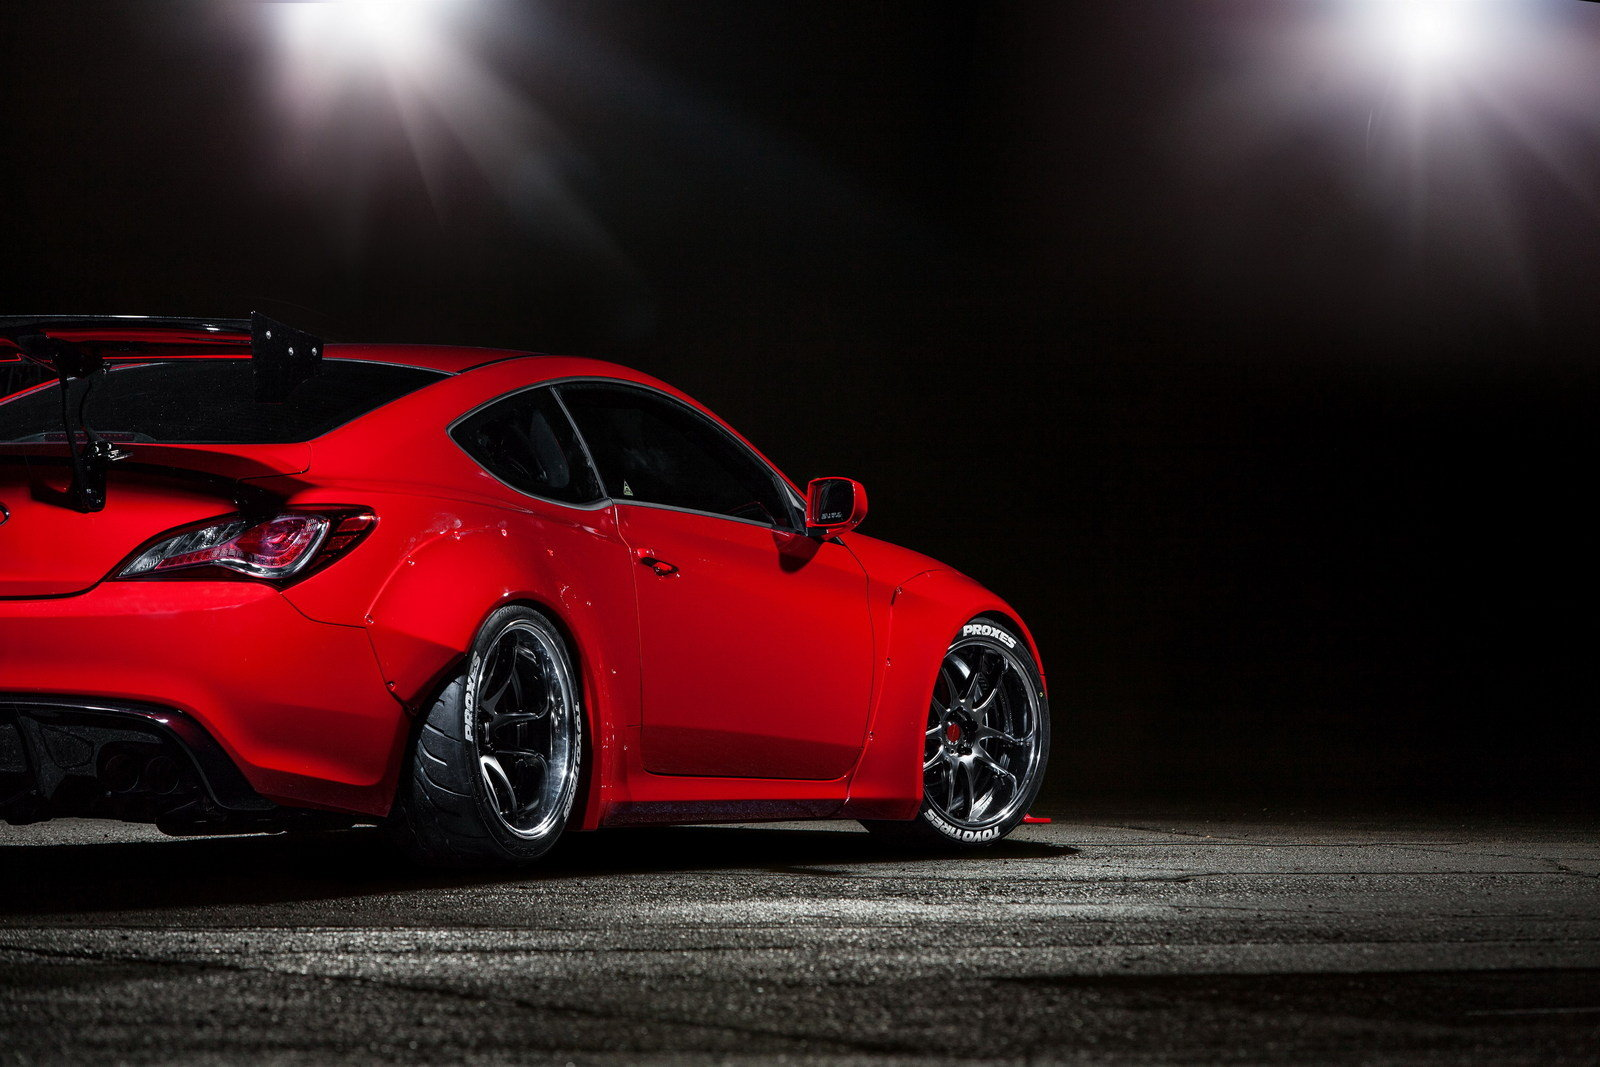 2015 hyundai genesis coupe by blood type racing picture 576194 car review top speed. Black Bedroom Furniture Sets. Home Design Ideas